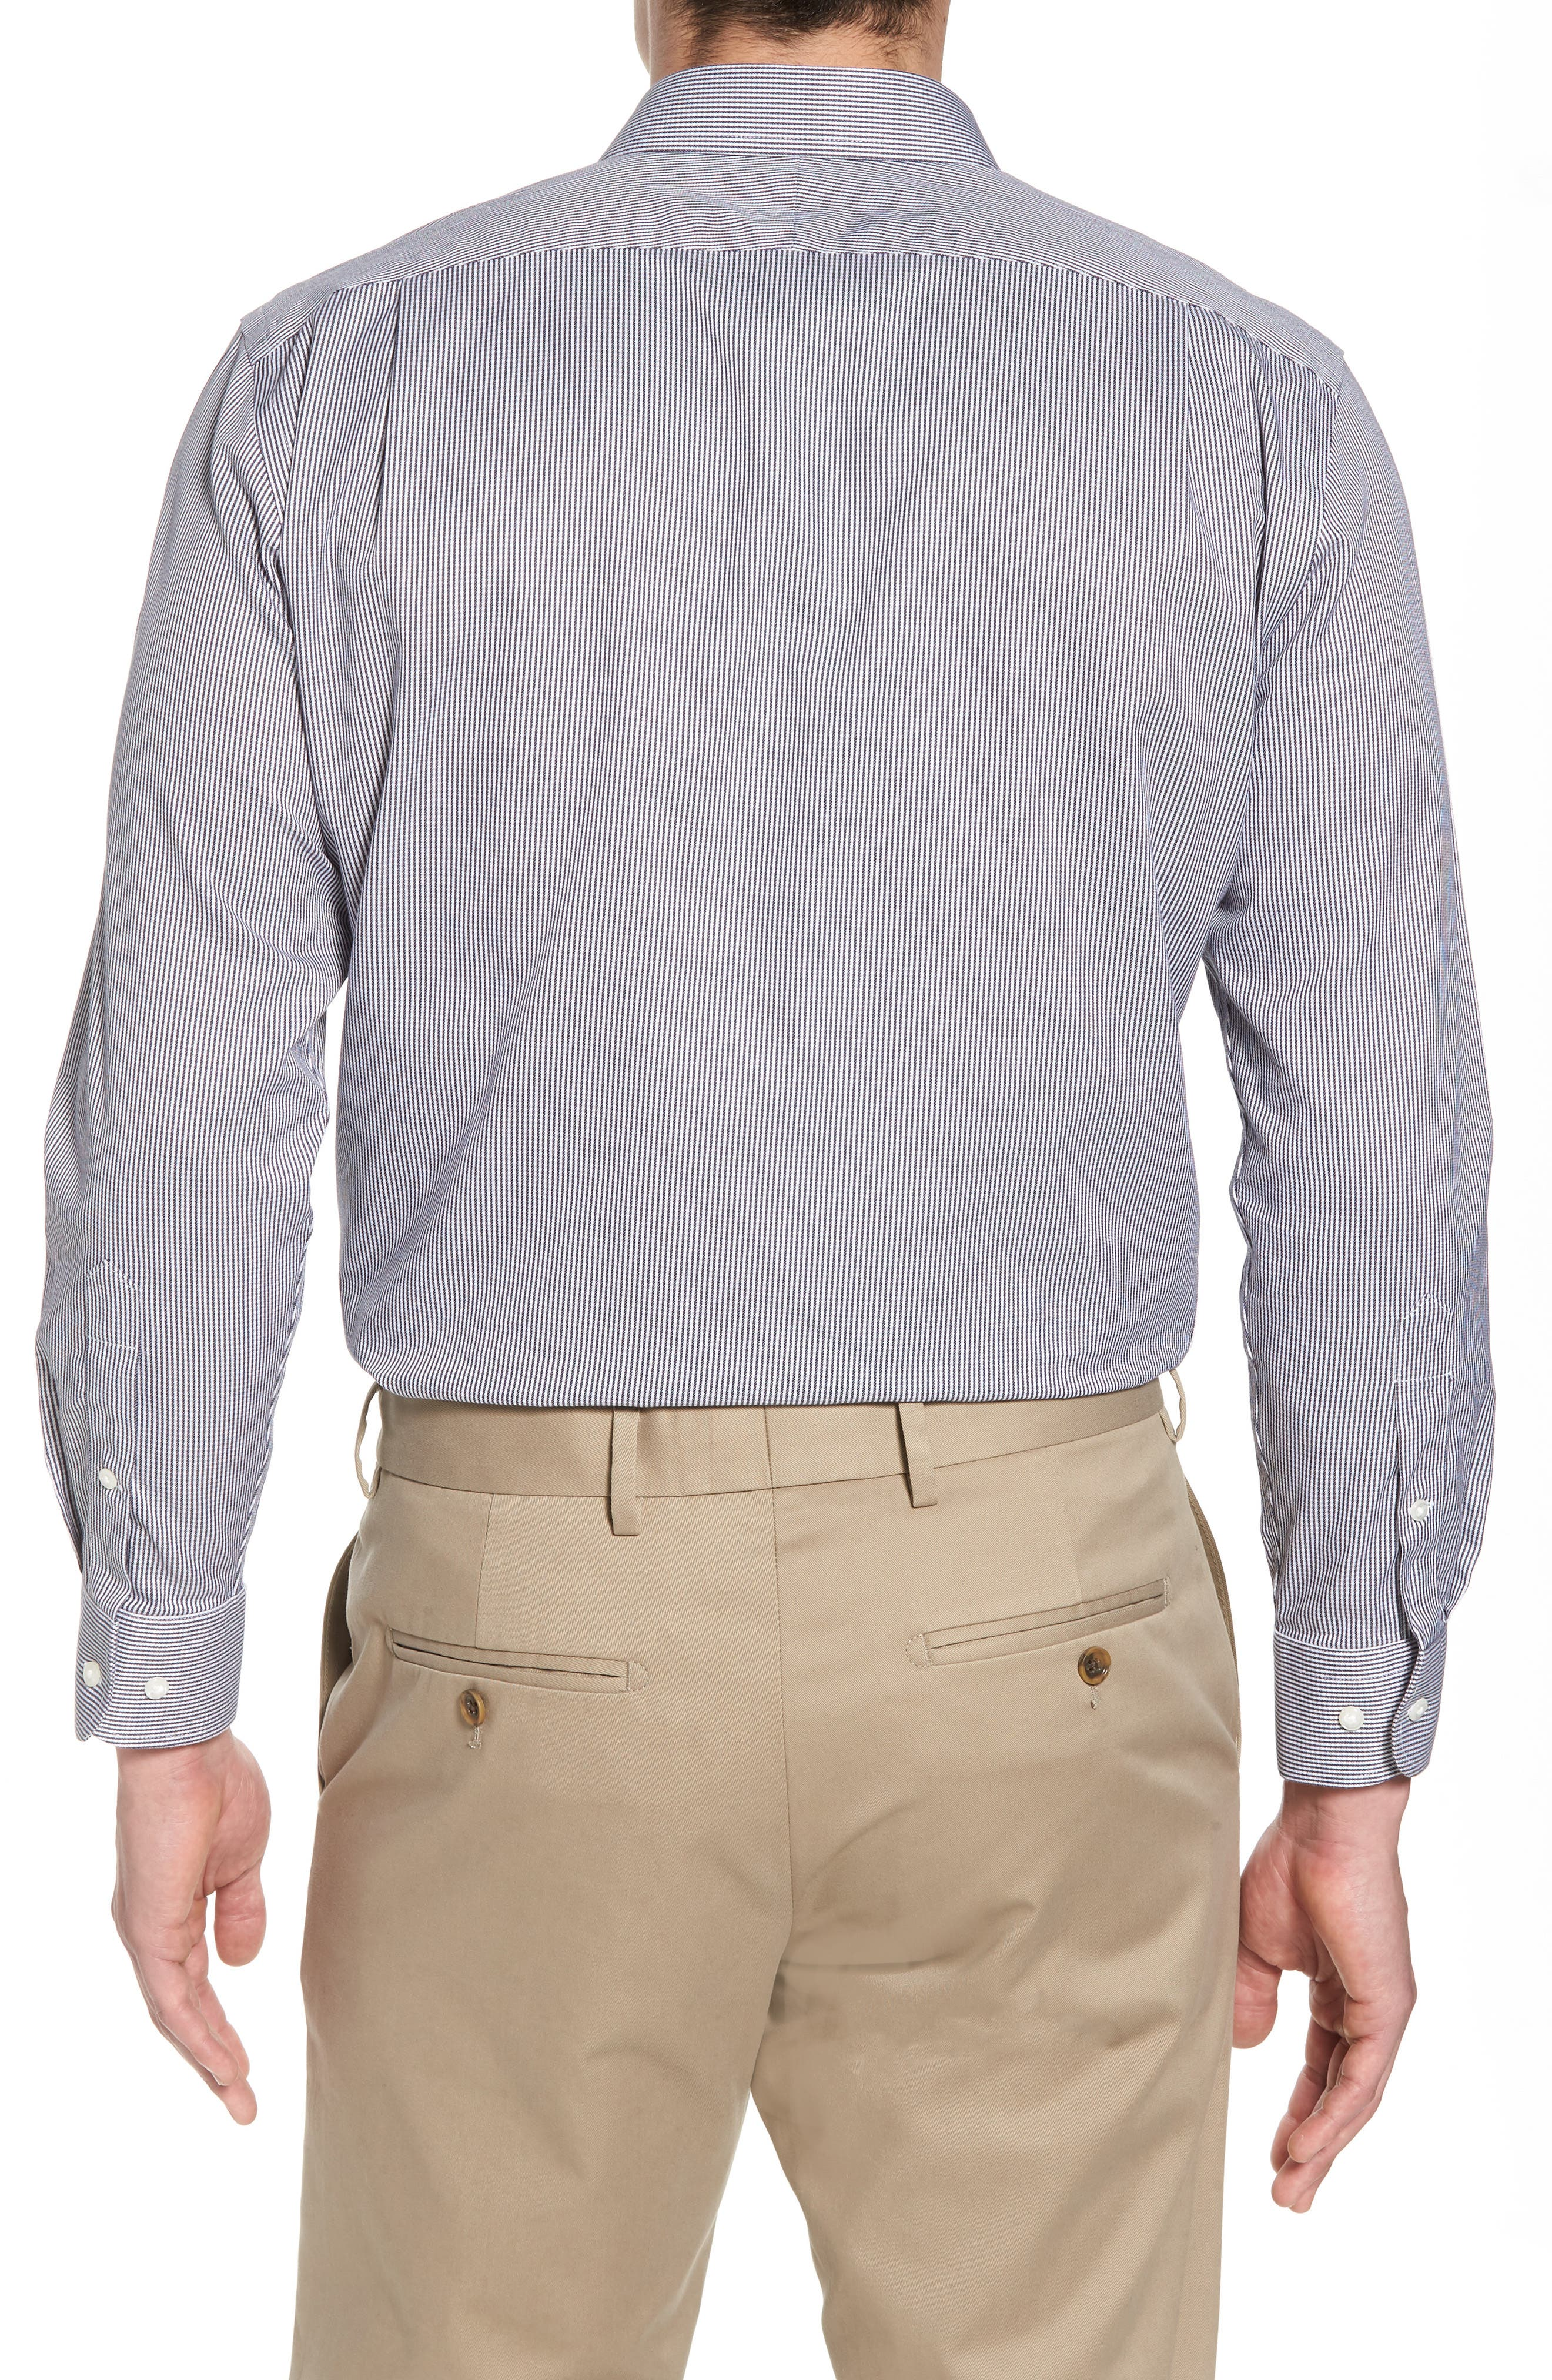 Smartcare<sup>™</sup> Trim Fit Stripe Dress Shirt,                             Alternate thumbnail 3, color,                             001